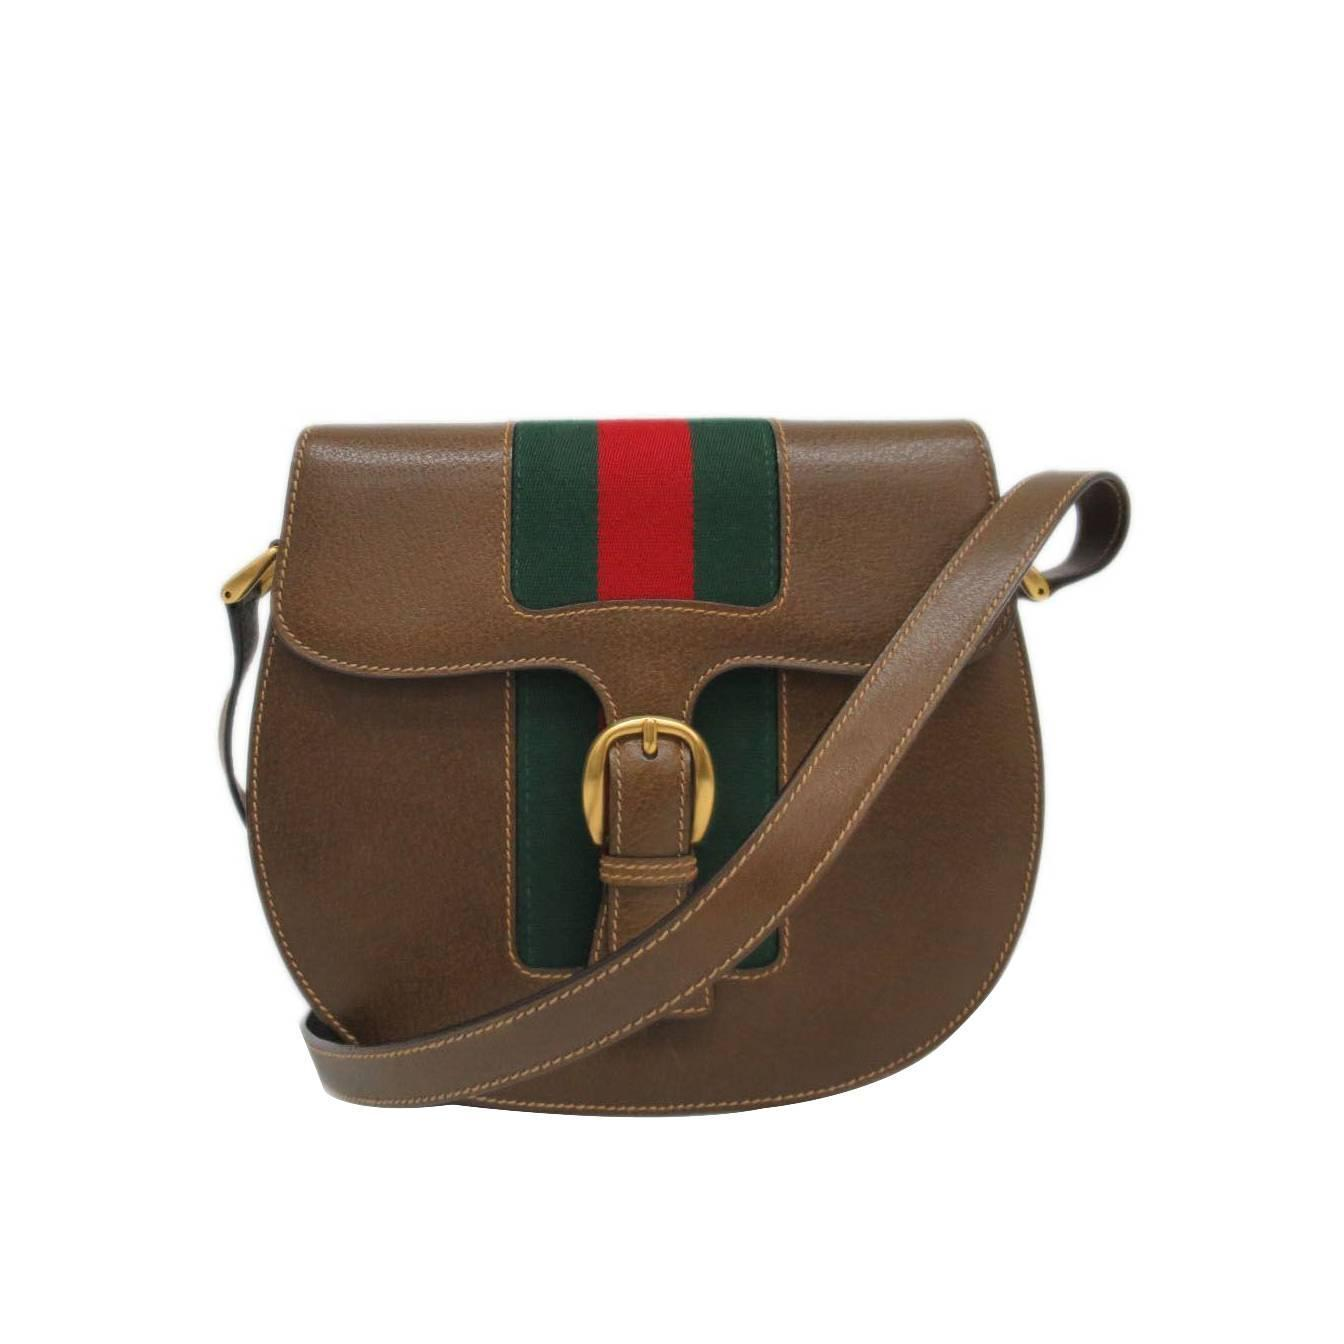 Vintage Gucci Crossbody Bag 76